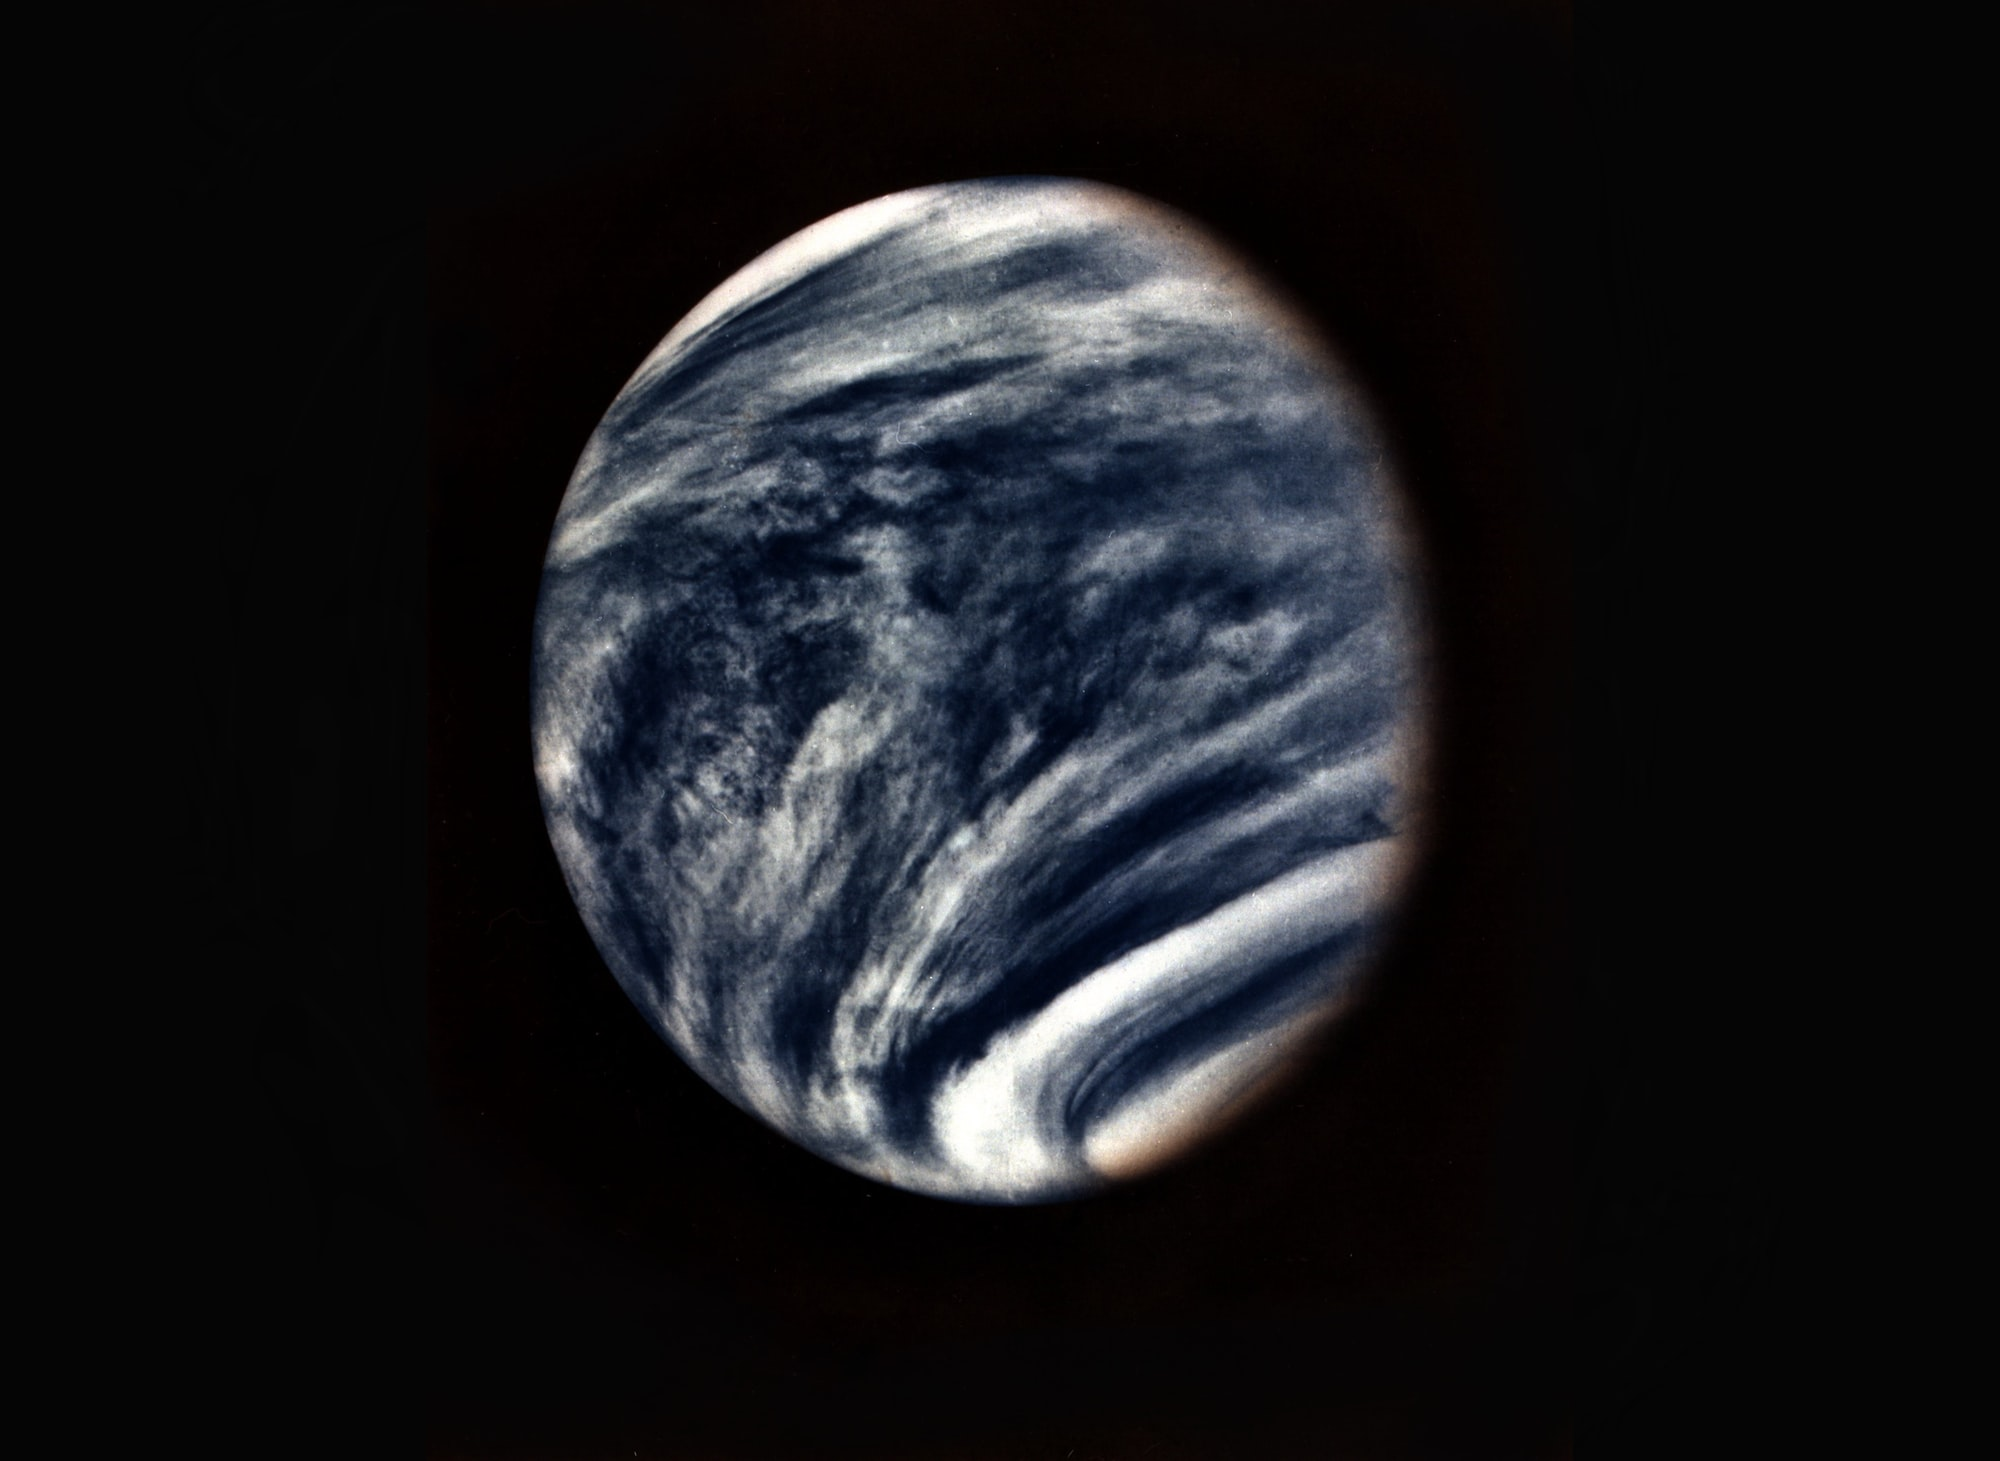 This picture of Venus was captured by the Mariner 10 spacecraft during its approach to the planet in early 1974